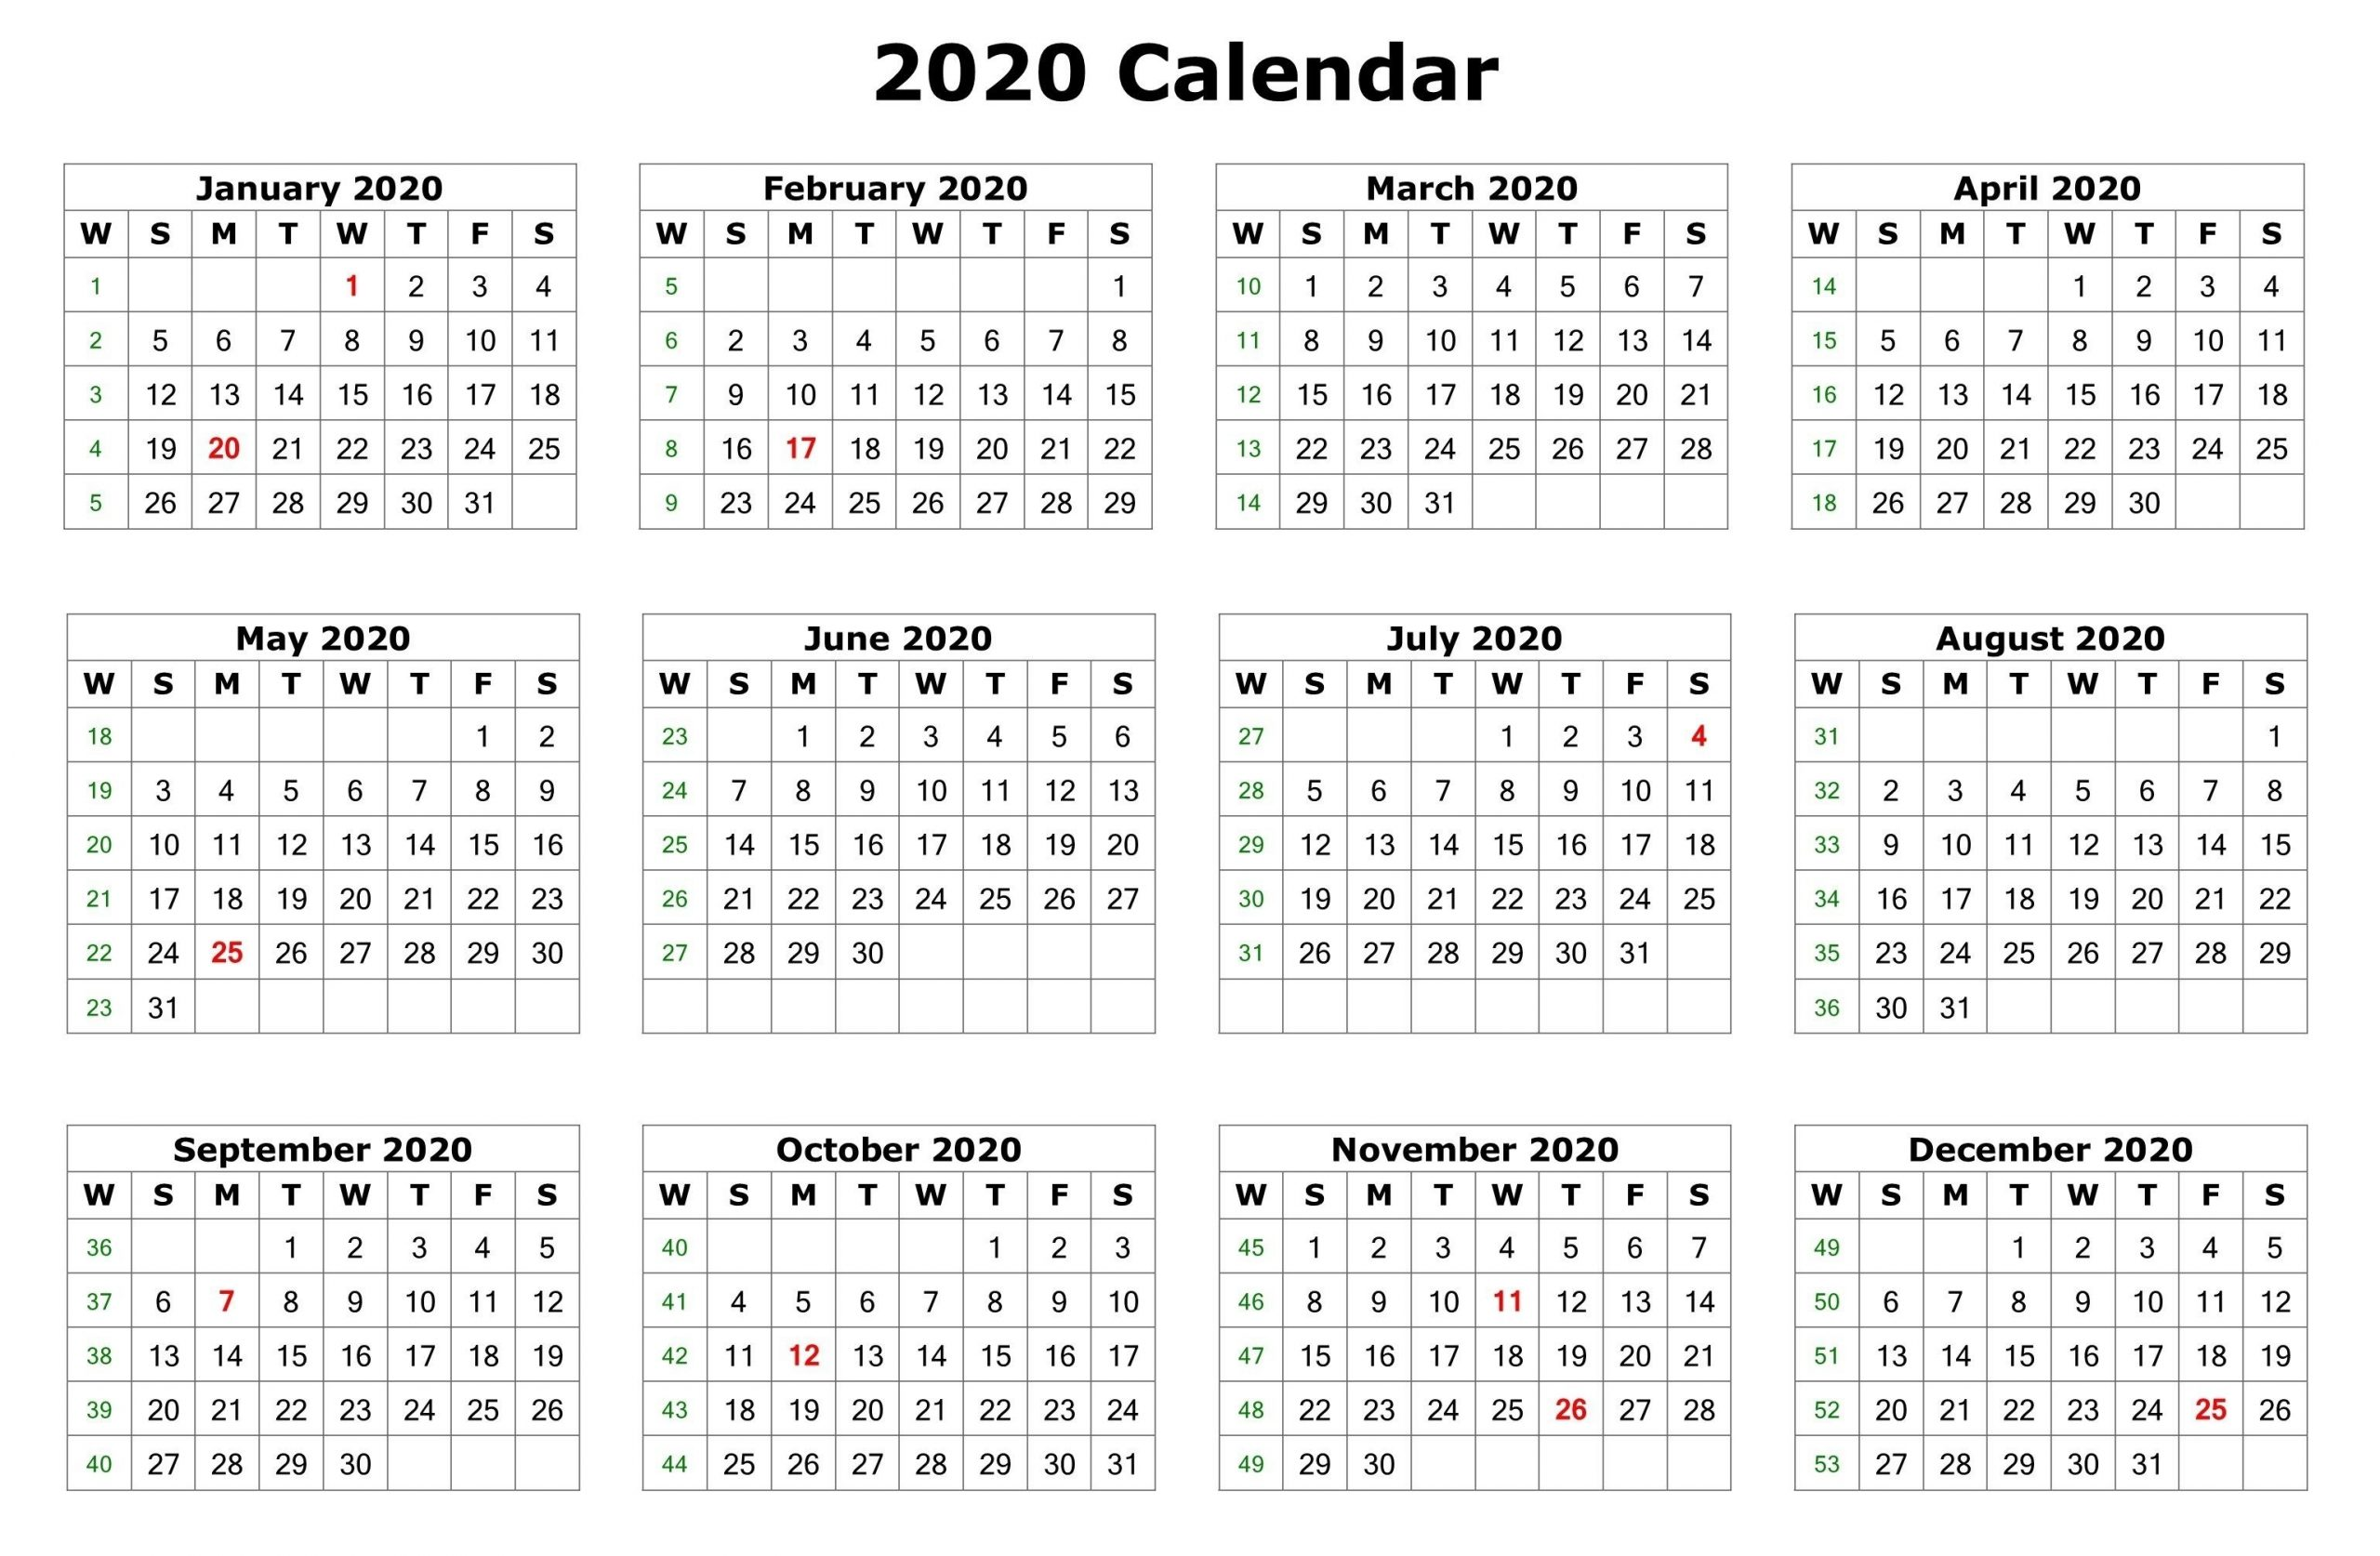 2020 One Page Calendar Printable | Calendar 2020 | 12 Month throughout 2020 12 Month Calendar Printable